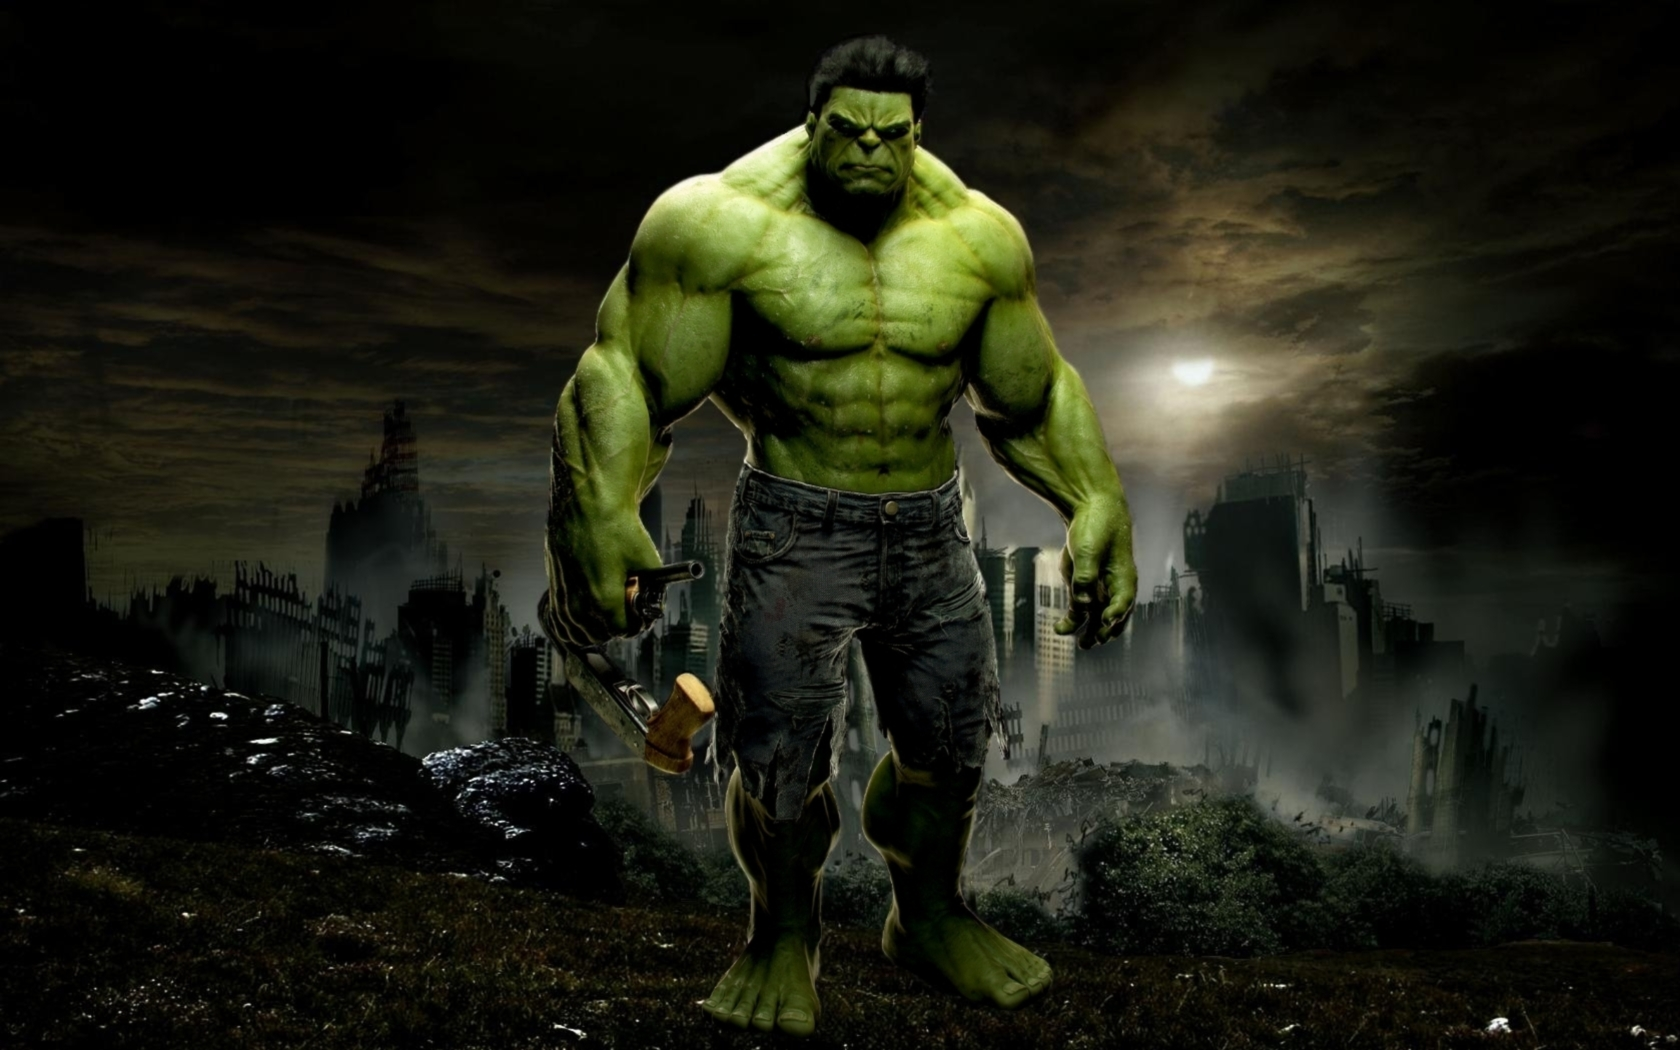 Awesome Marvel wallpaper Hulk wallpapers 1680x1050